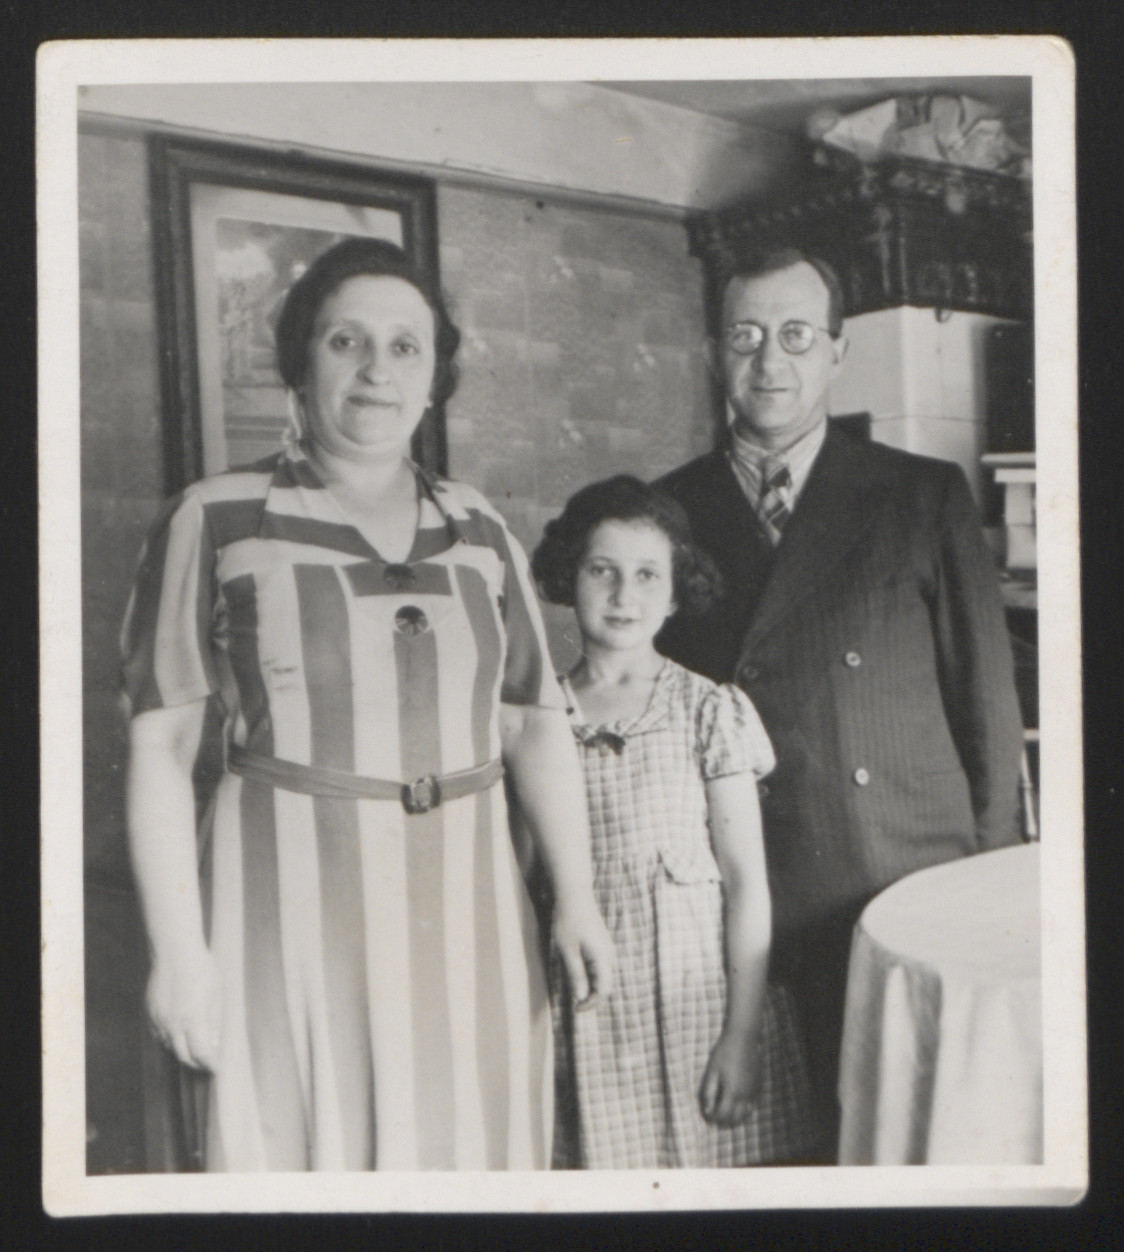 Portrait of the Zuckermann family.  Ruth Zuckermann with parents Perle and Heinz shortly before her father's emigration from Germany to England.